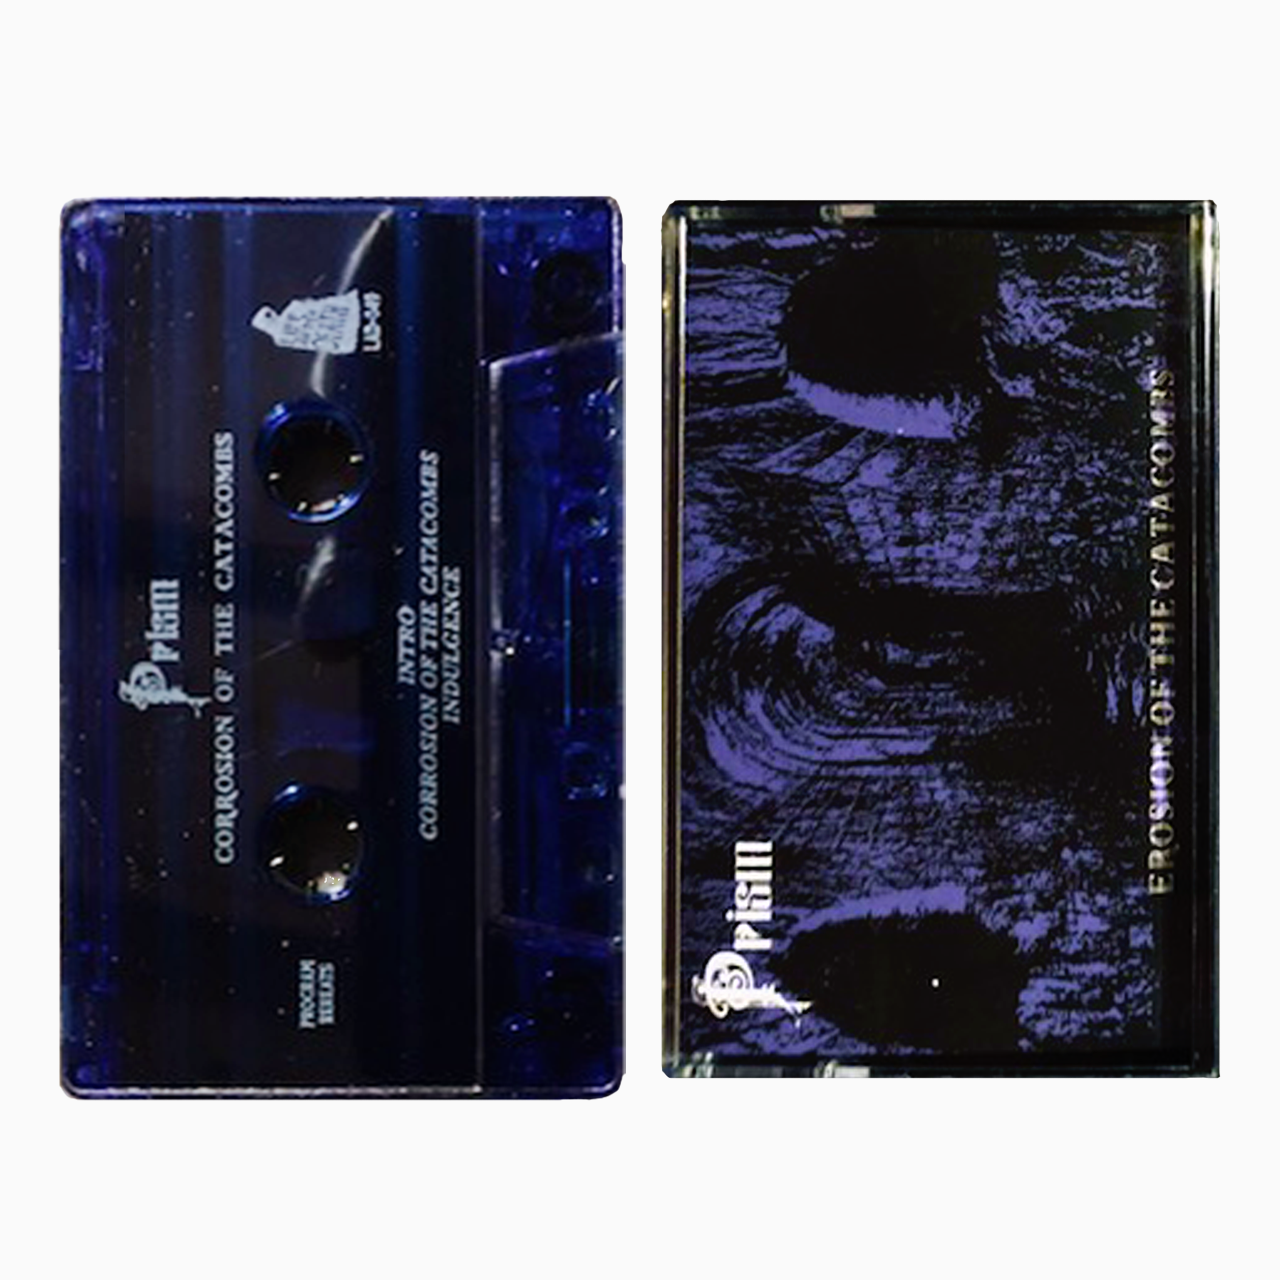 Prism 'Erosion of the Catacombs' cassette